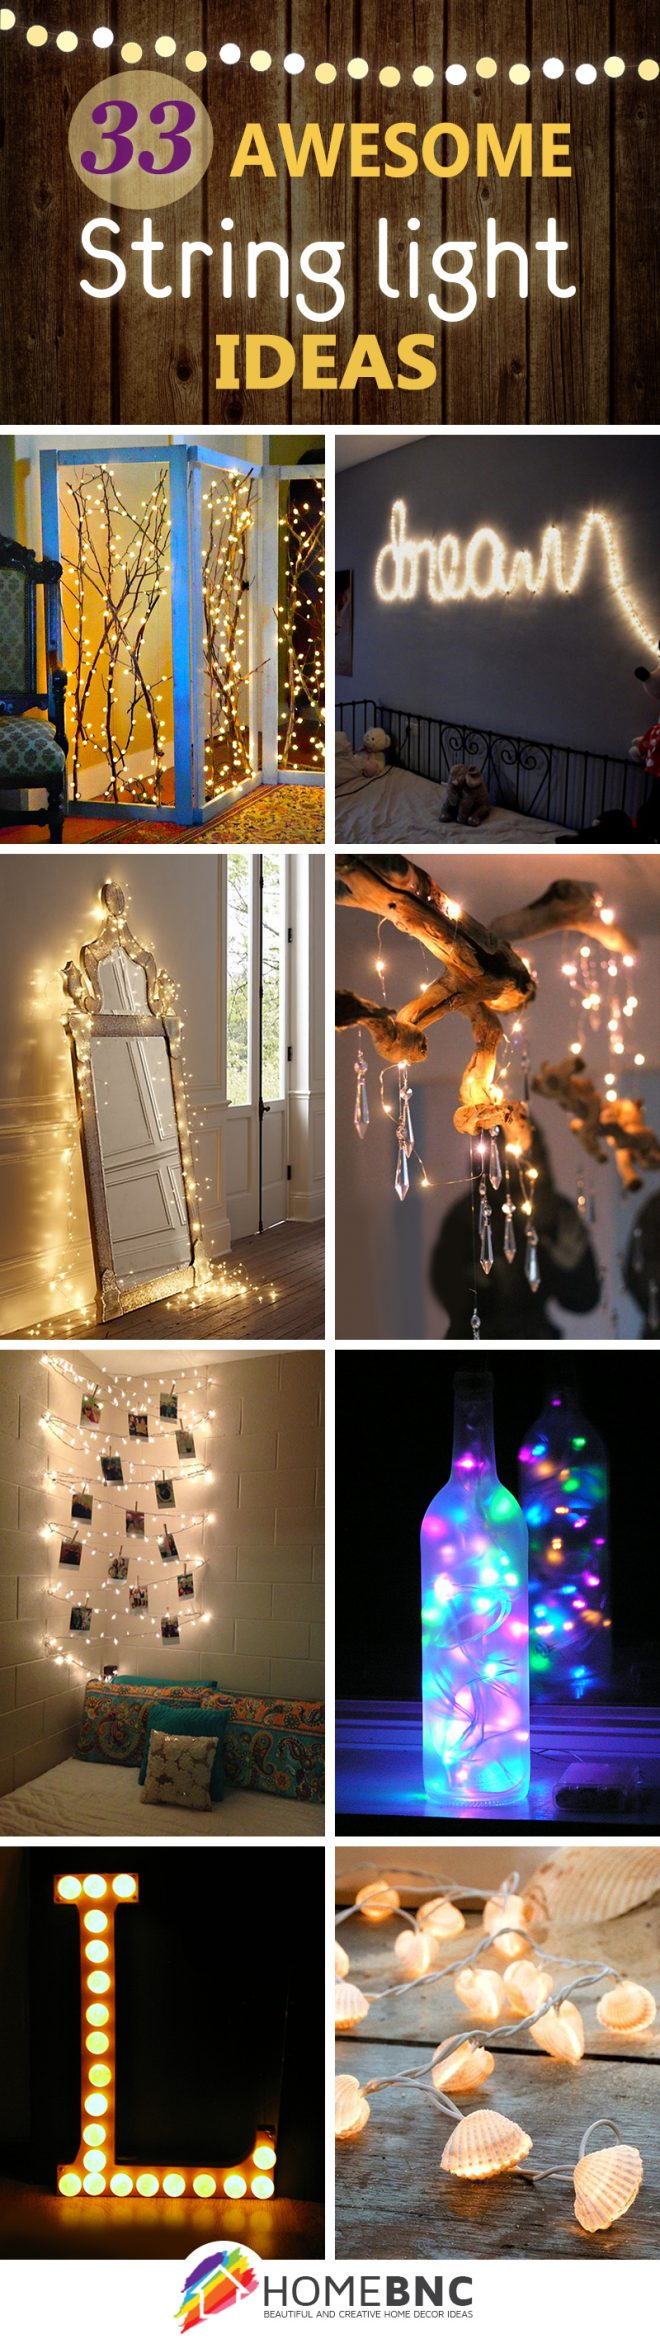 Awesome String Light Ideas 2